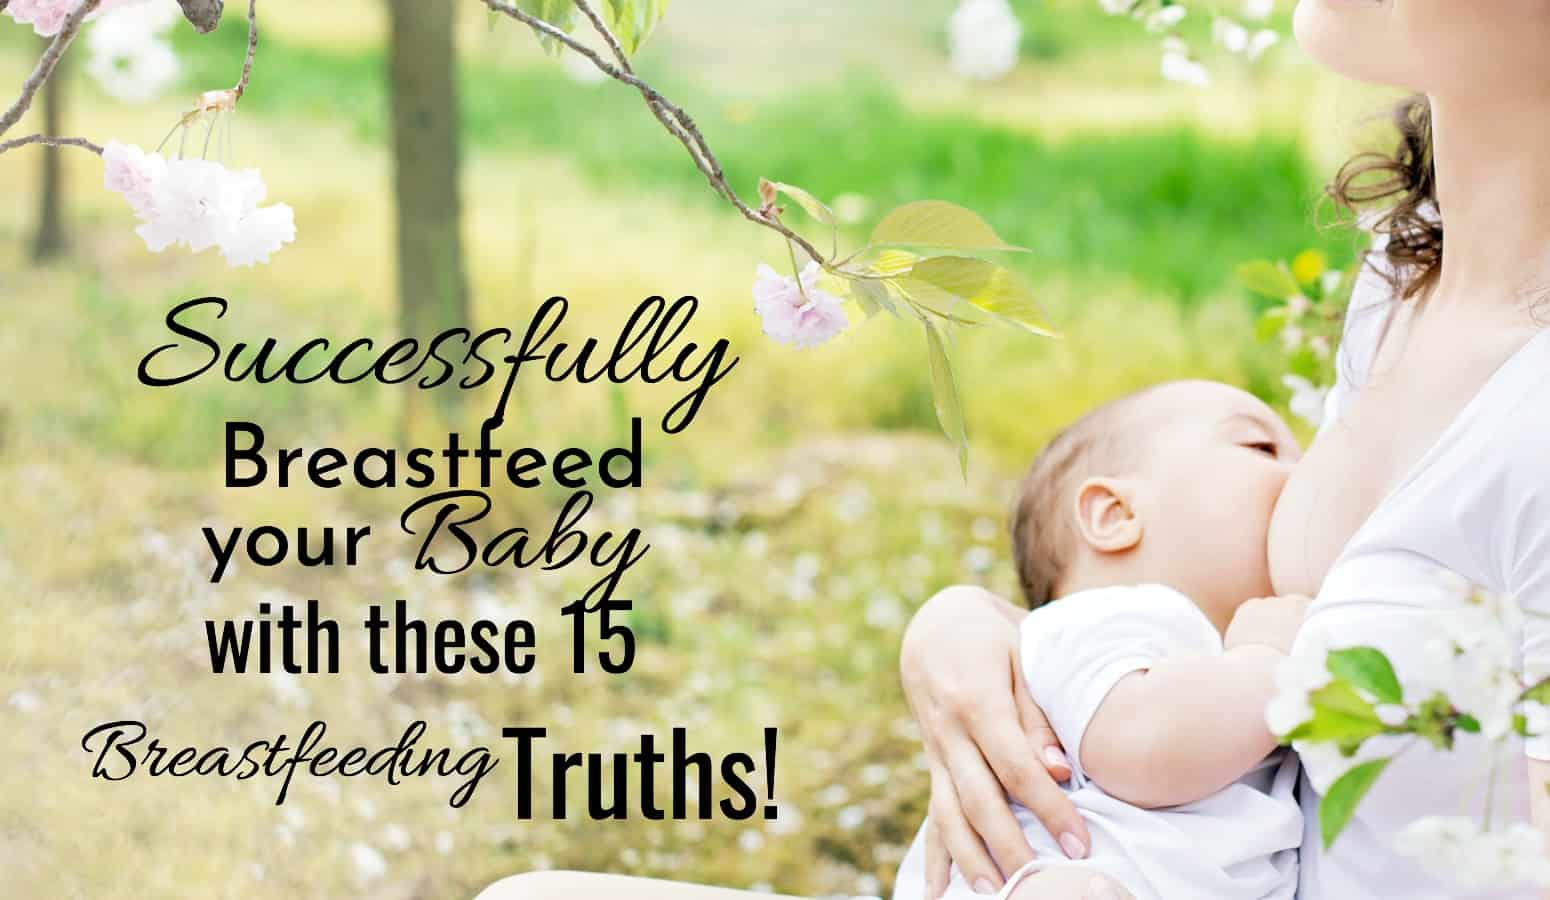 Successfully breastfeed your baby with these 15 breastfeeding truths. Mom and baby breastfeeding.